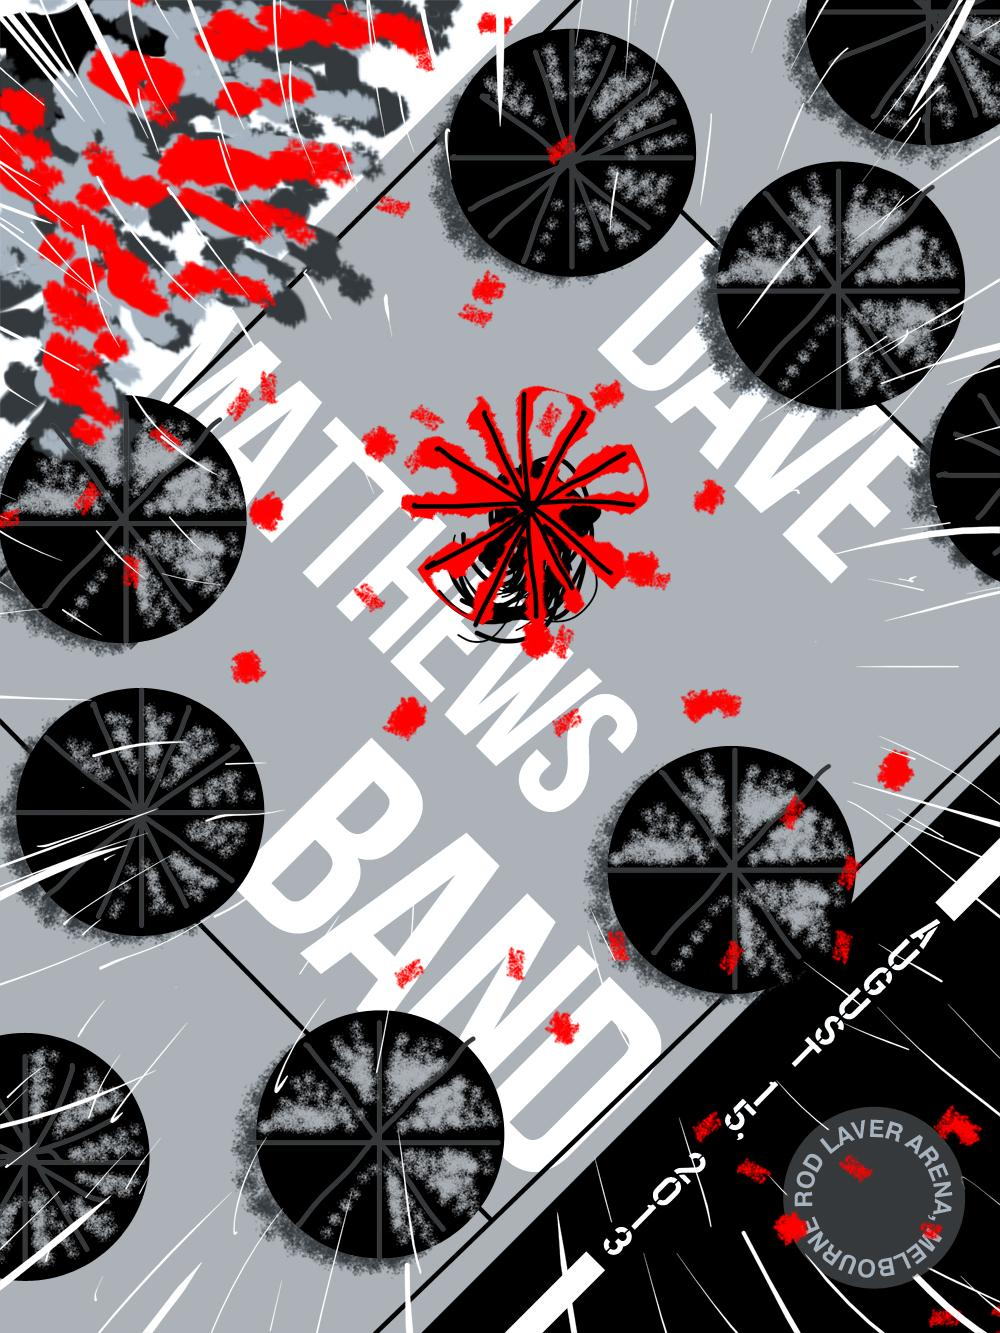 Dave Matthews Band - Poster - image 1 - student project